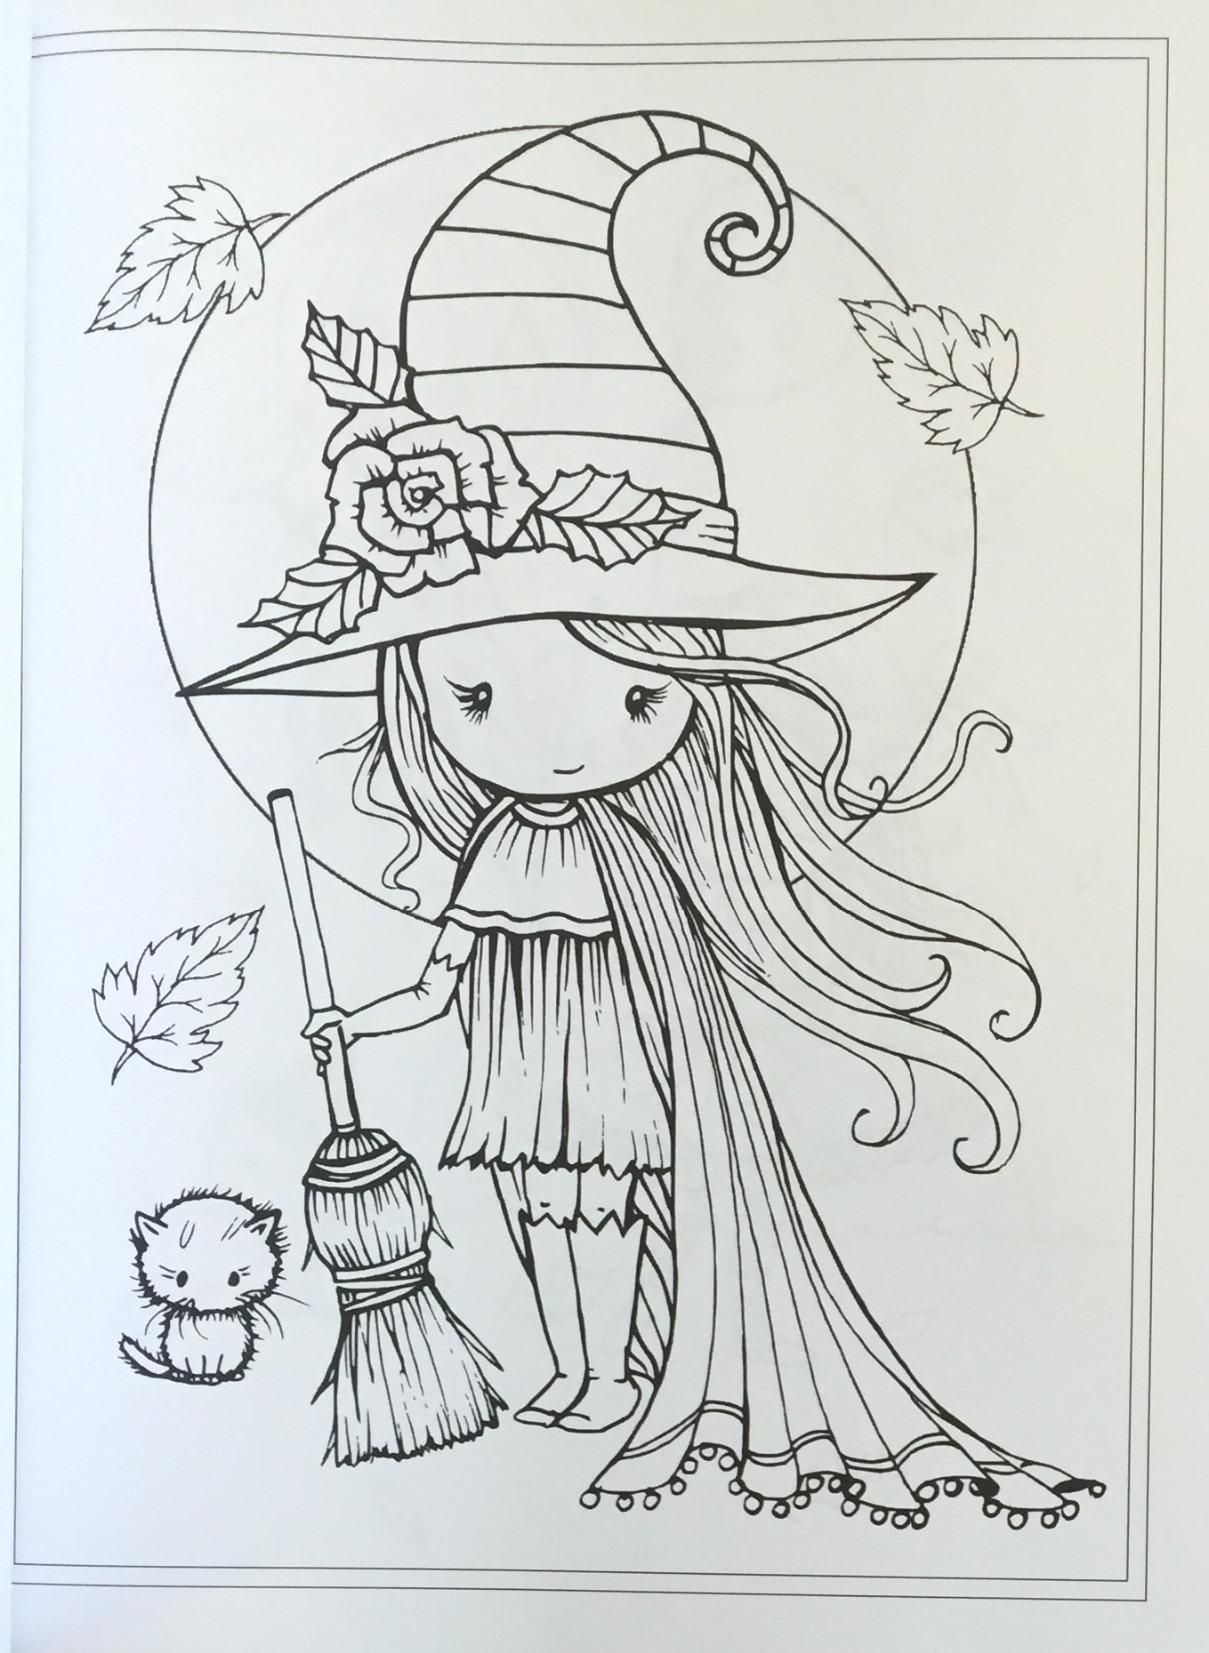 Whimsical Halloween Coloring Book Witches Vampires Kitties And More Molly Harrison